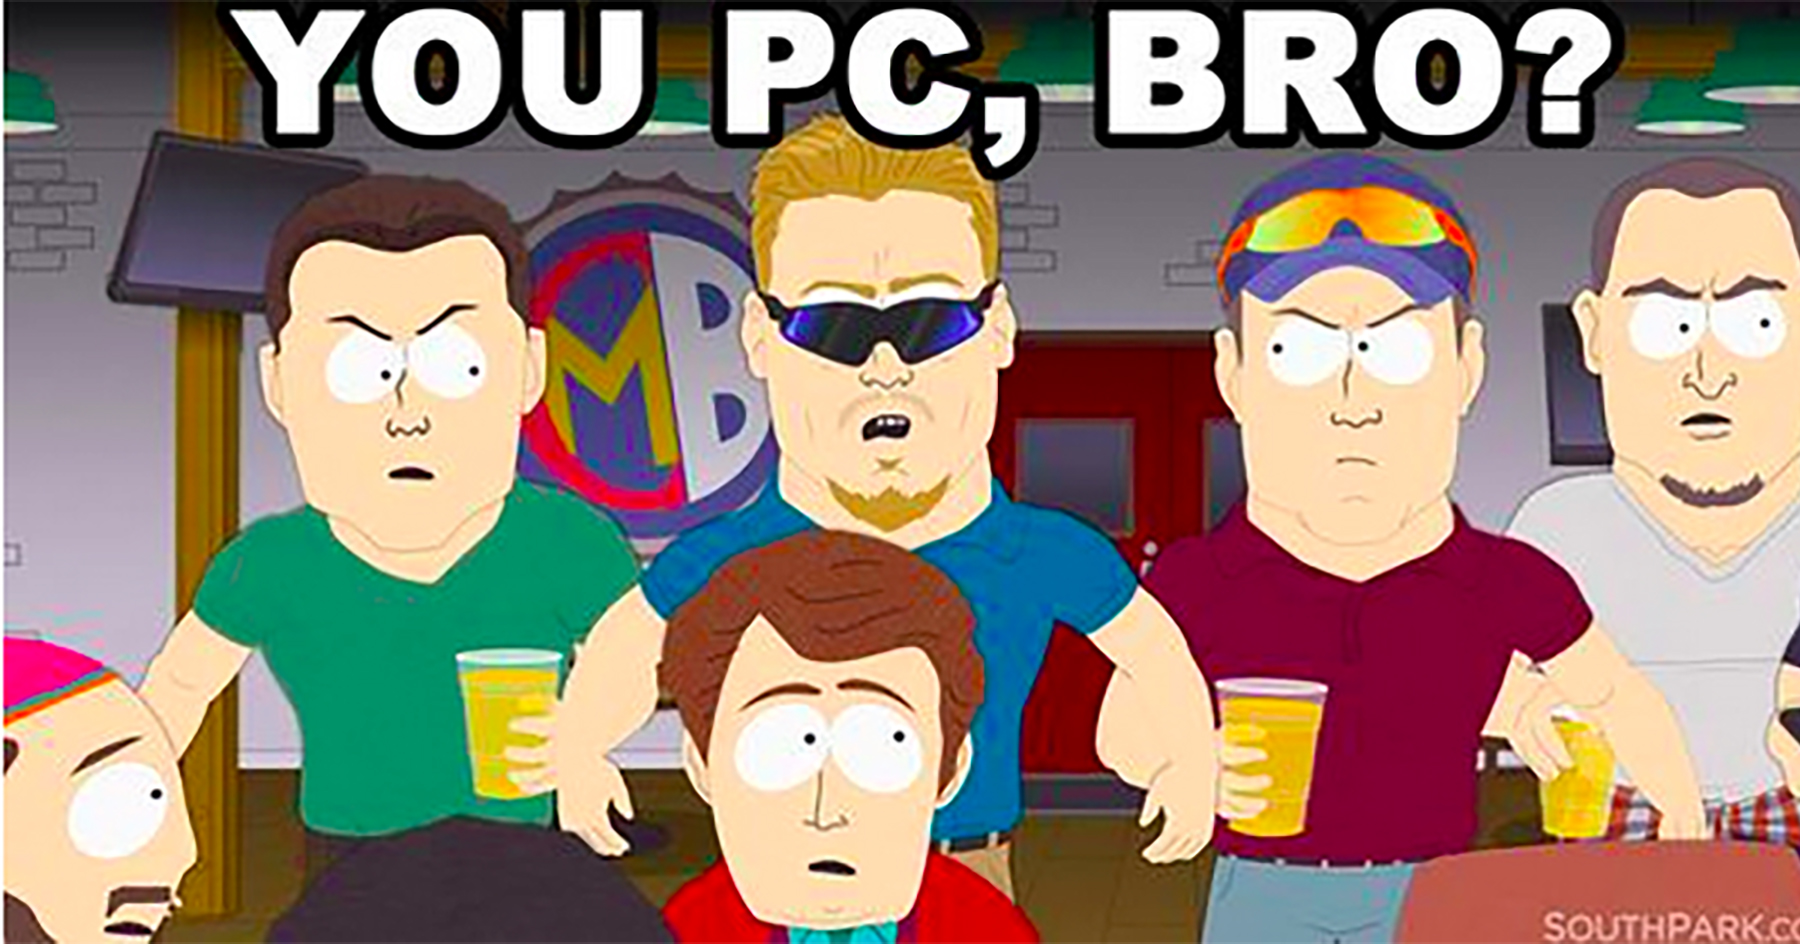 http://publisher.attn.com/sites/default/files/southpark.jpg